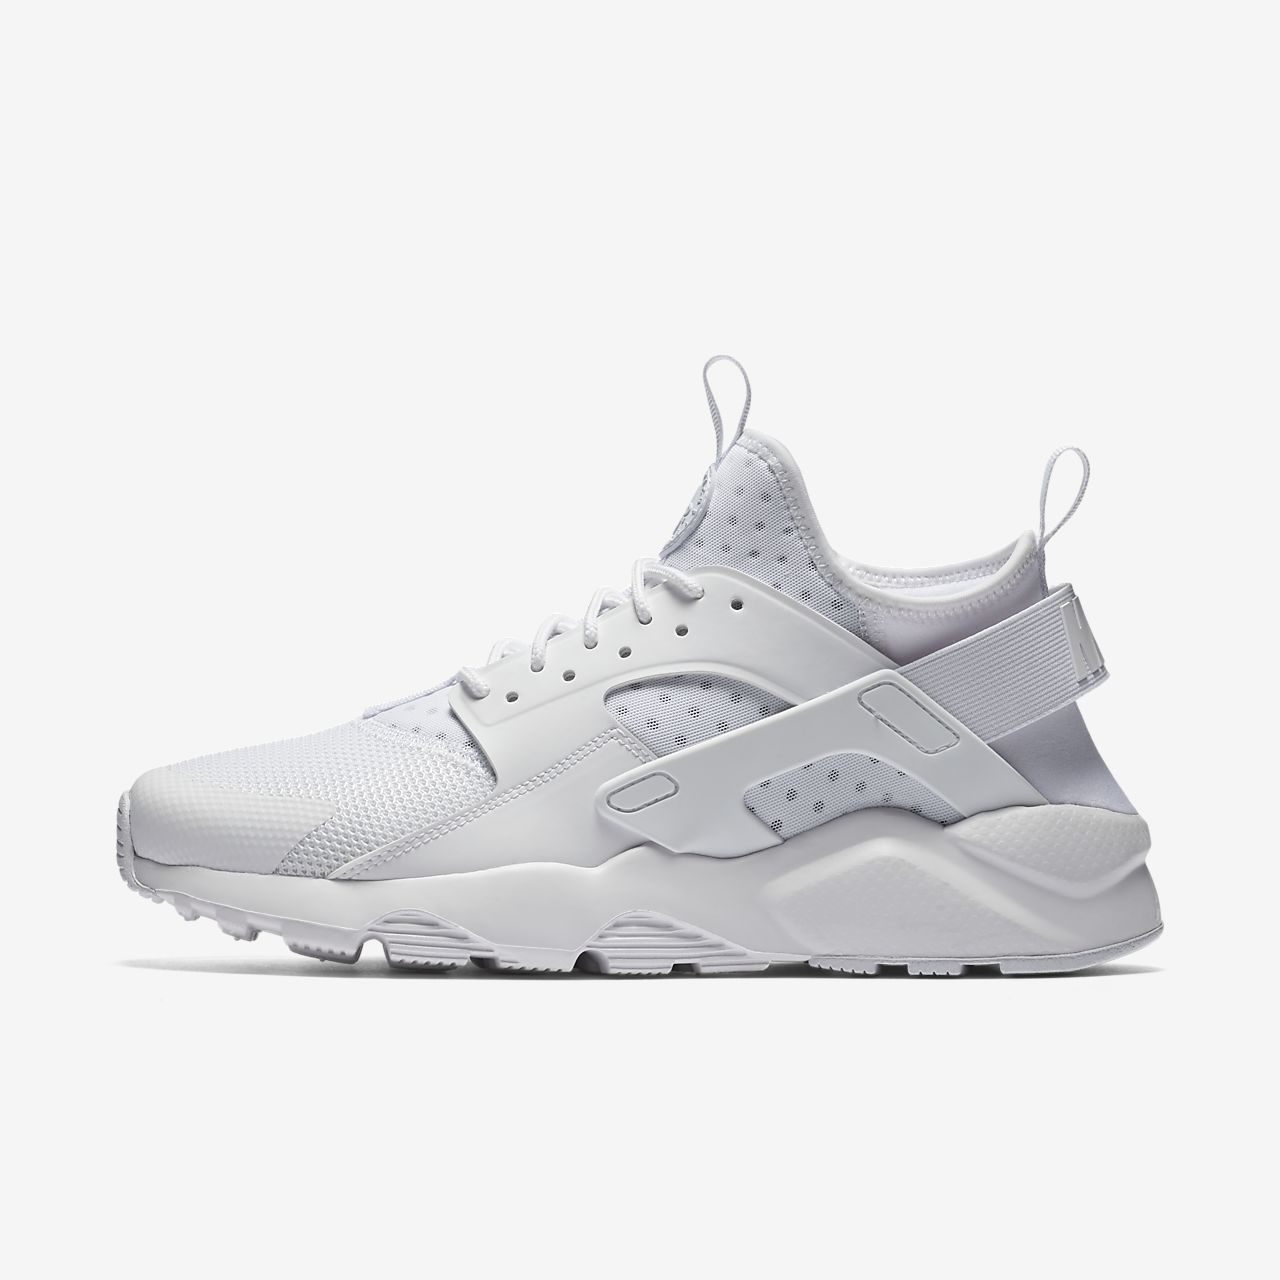 hot sale online ba7dc 3e5b9 ... Nike Air Huarache Ultra Men s Shoe